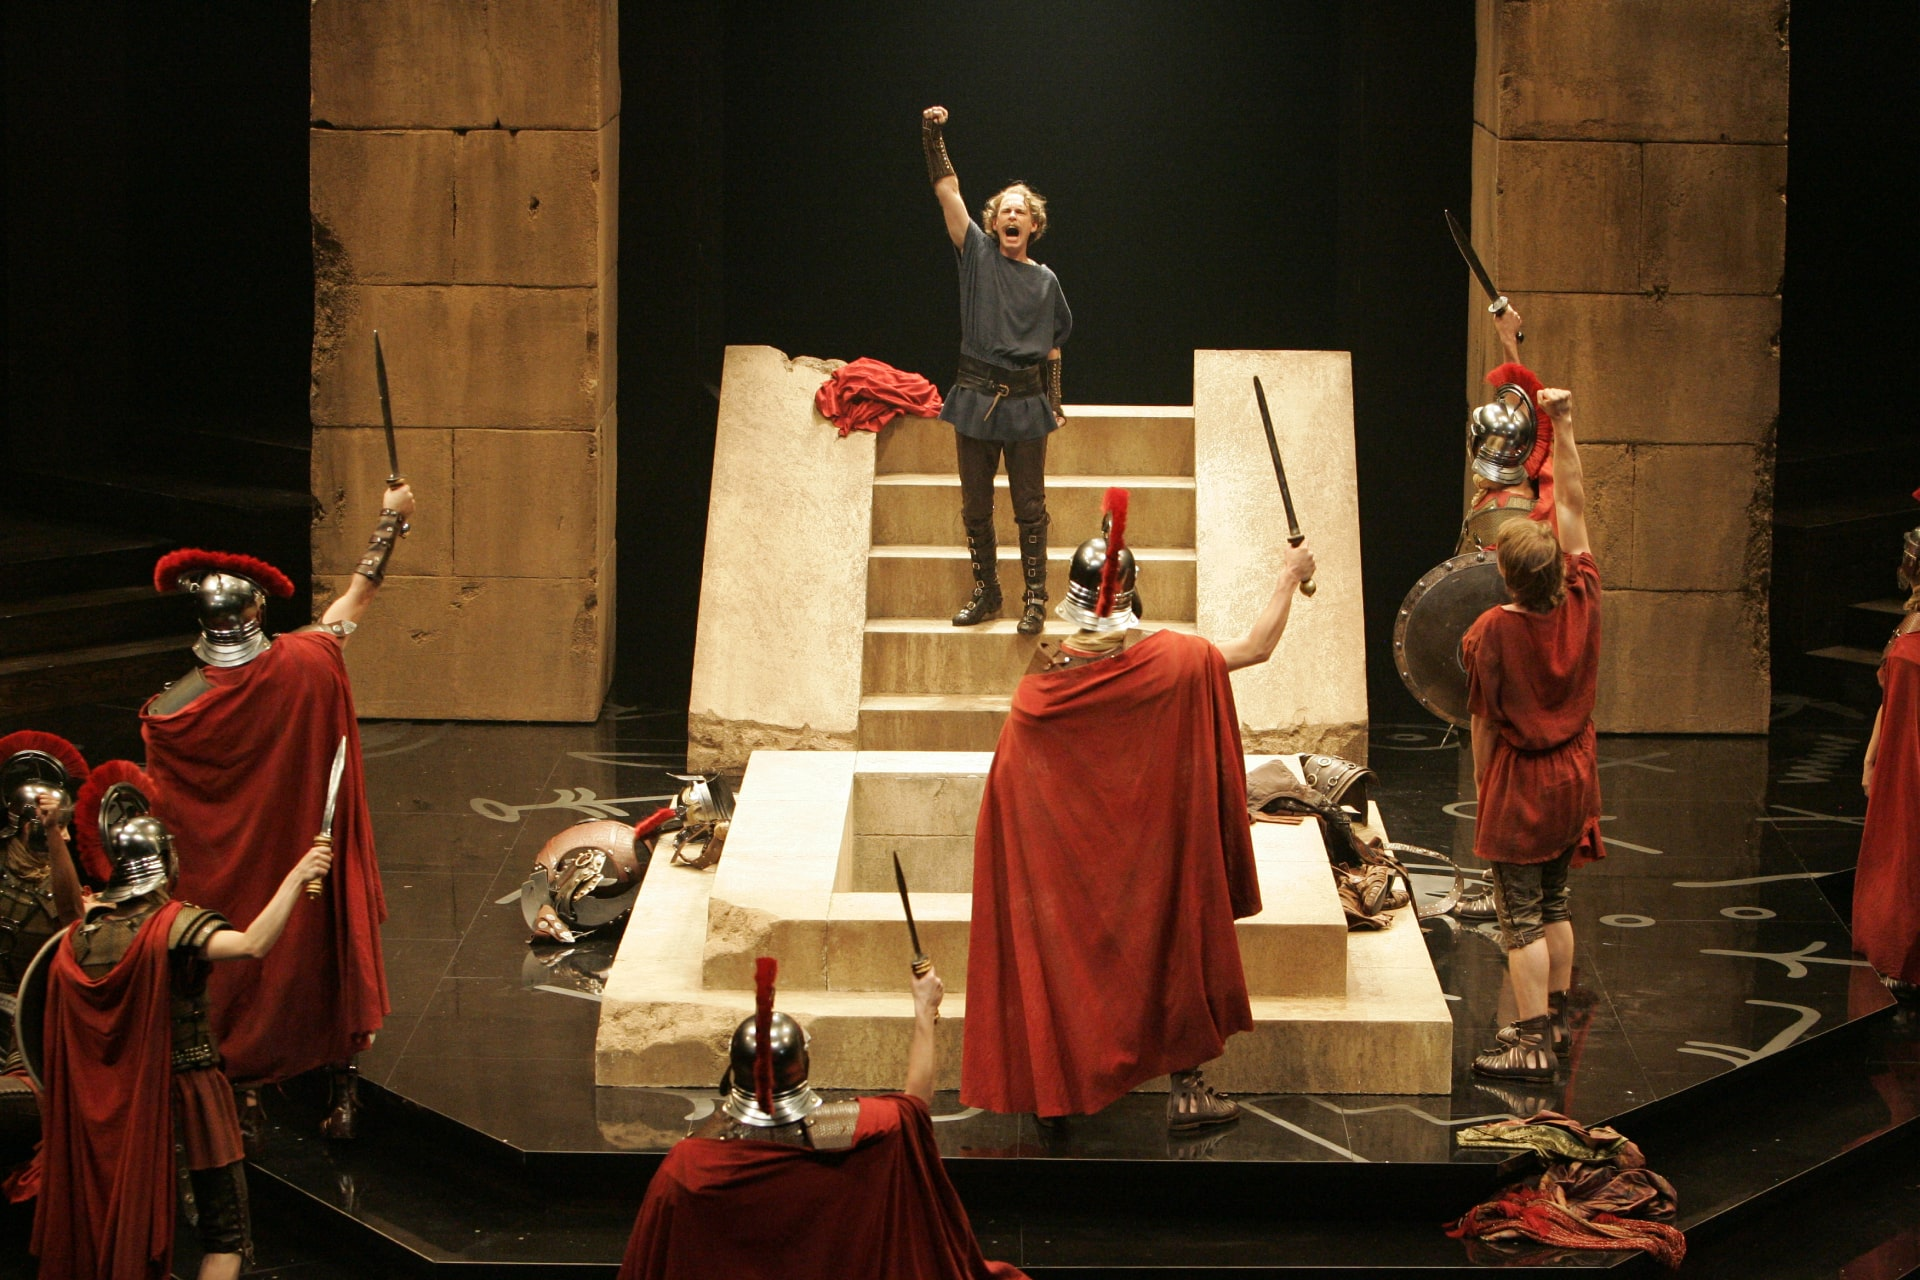 Man raises fist on stairs in from of red-cloaked Roman soldiers.